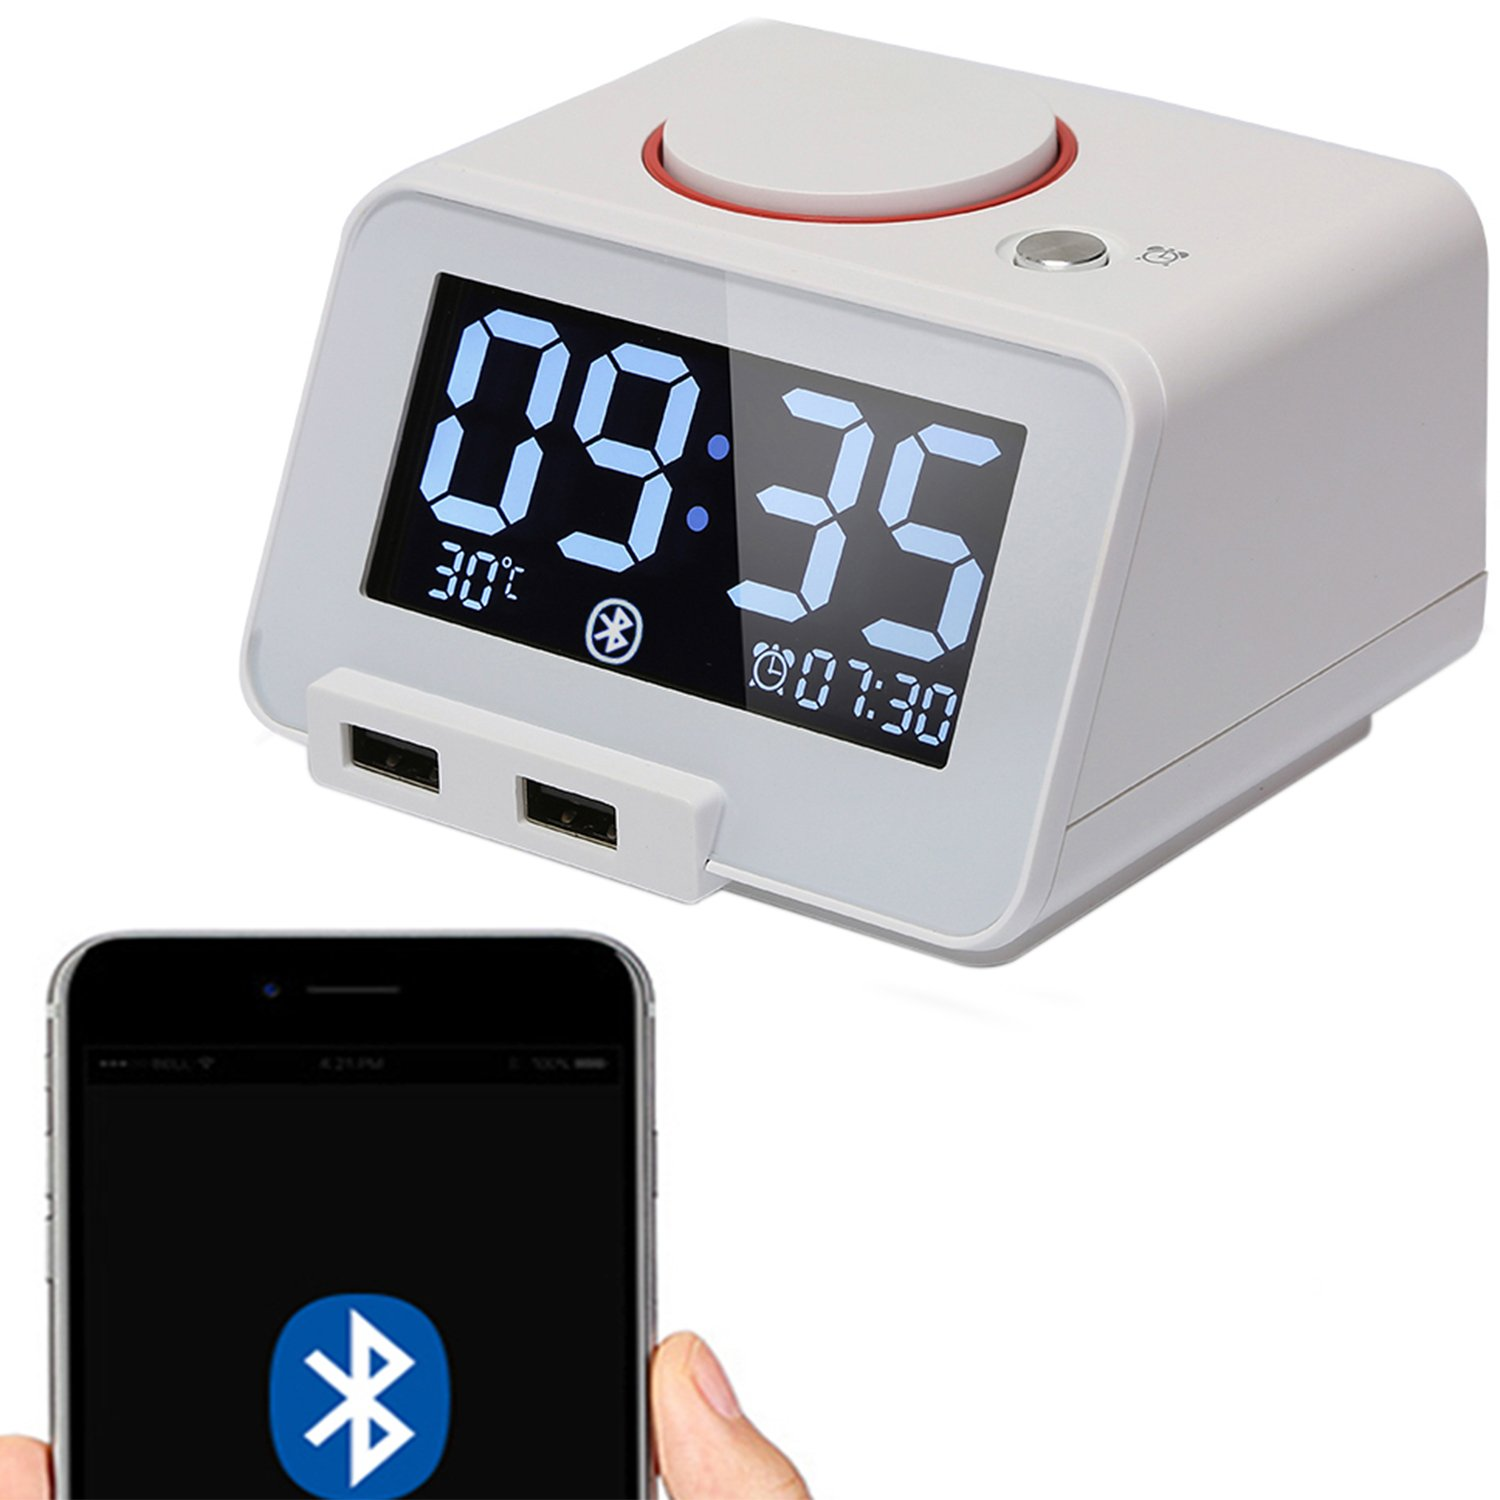 Homtime Bluetooth Speaker Digital Alarm Clock Charger with Dual USB Charging Ports,Indoor Temperrature,Dimmable LCD Larger Display and Snooze for Bedroom or Hotel[Upgraded Version](White)